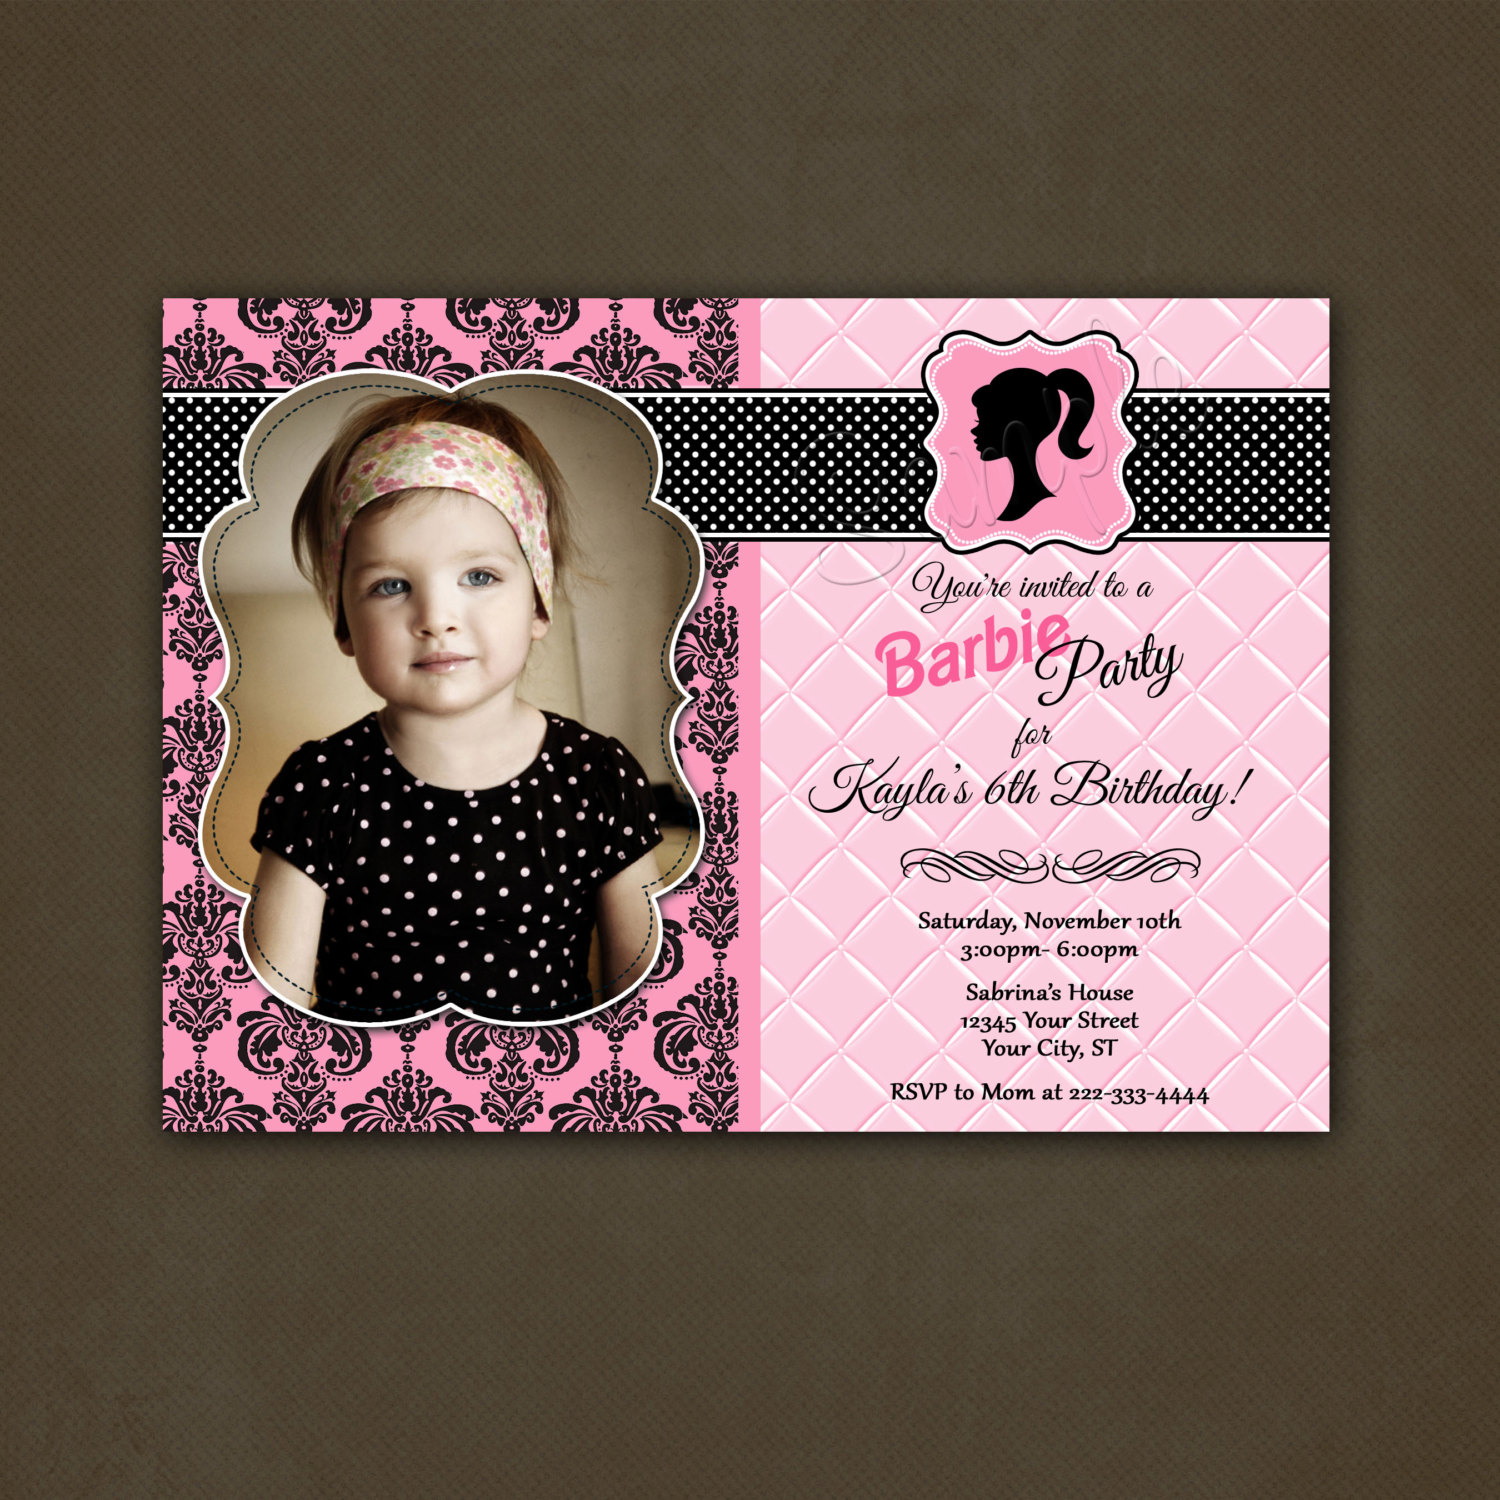 birthday invitation barbie theme ; Barbie-Birthday-Invitations-and-get-ideas-how-to-make-outstanding-birthday-Invitation-appearance-14